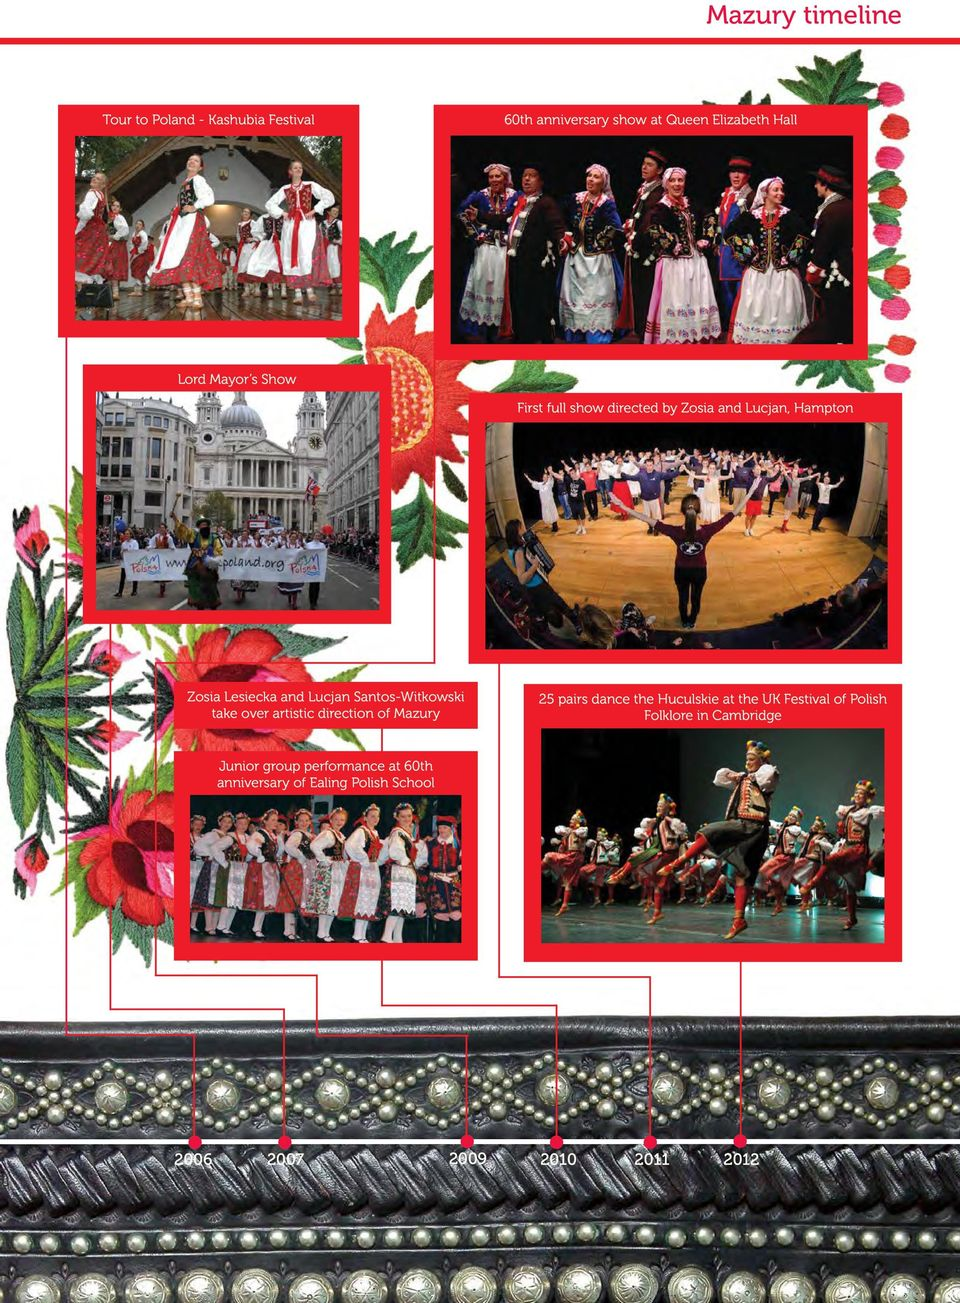 take over artistic direction of Mazury 25 pairs dance the Huculskie at the UK Festival of Polish Folklore